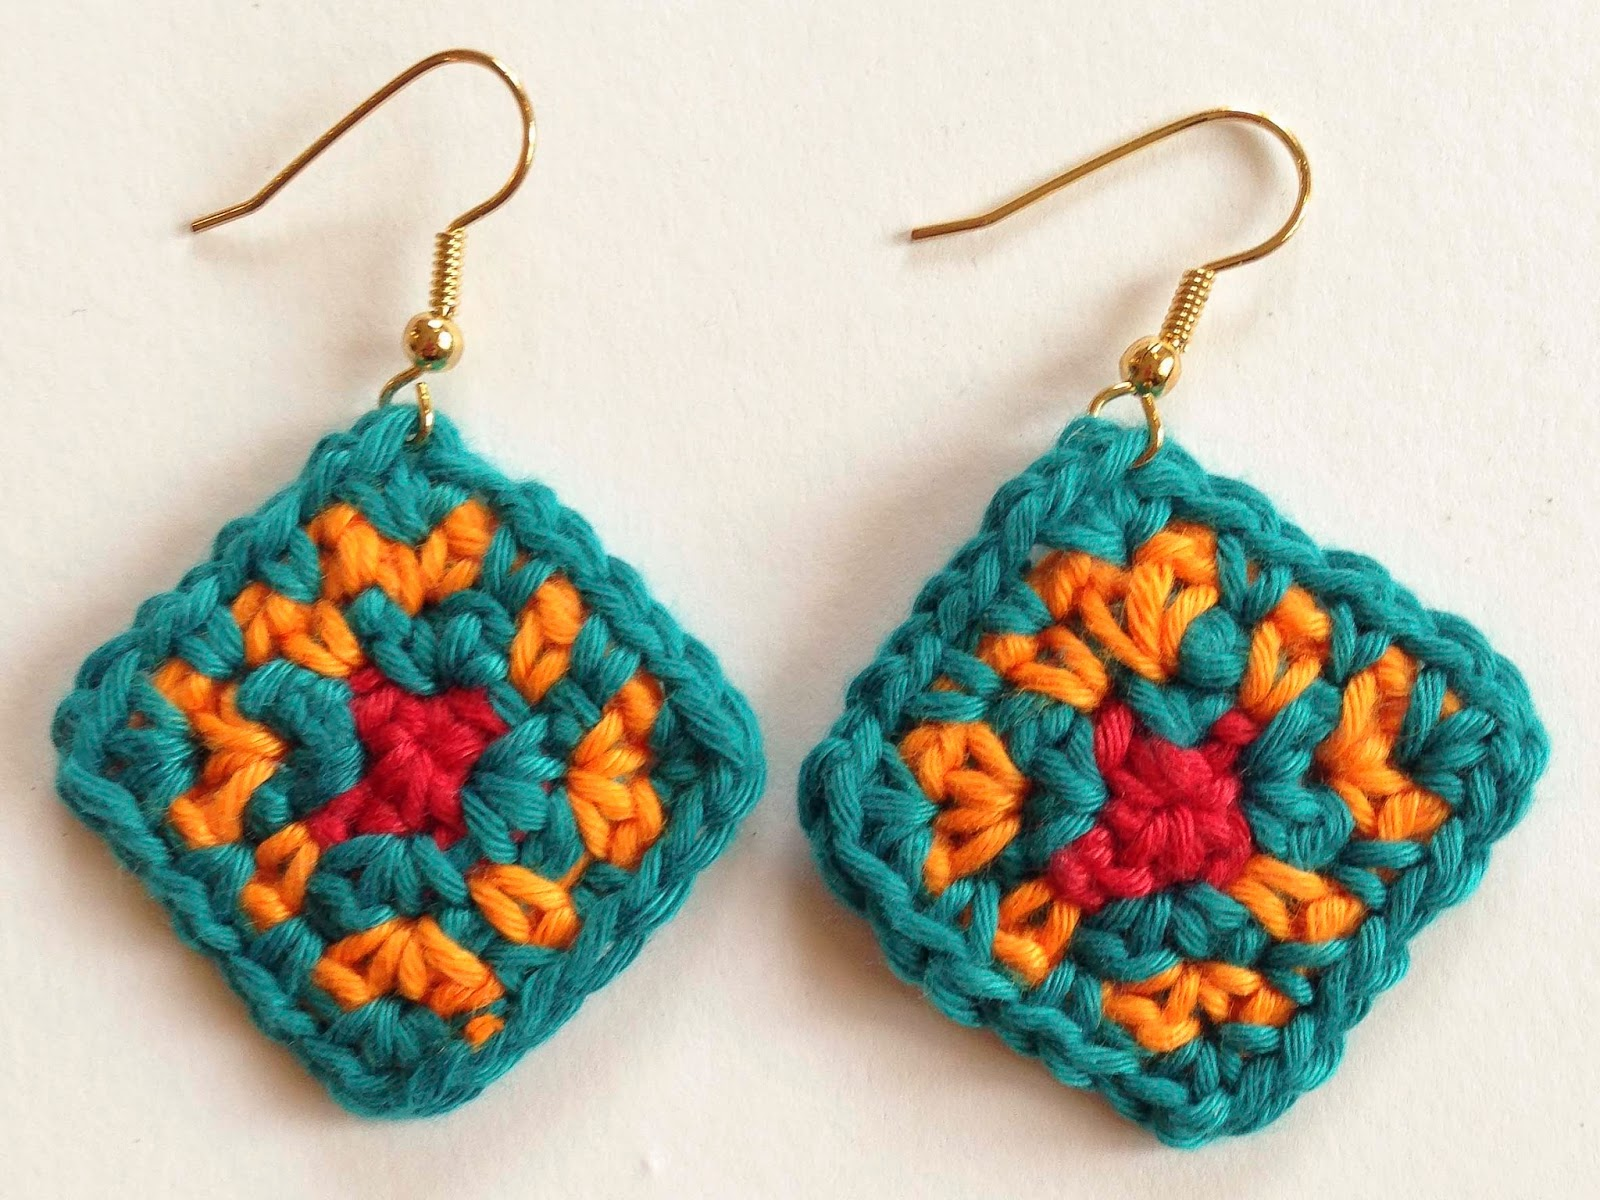 Crochet Earrings : The Colors of Africa Crochet Earrings